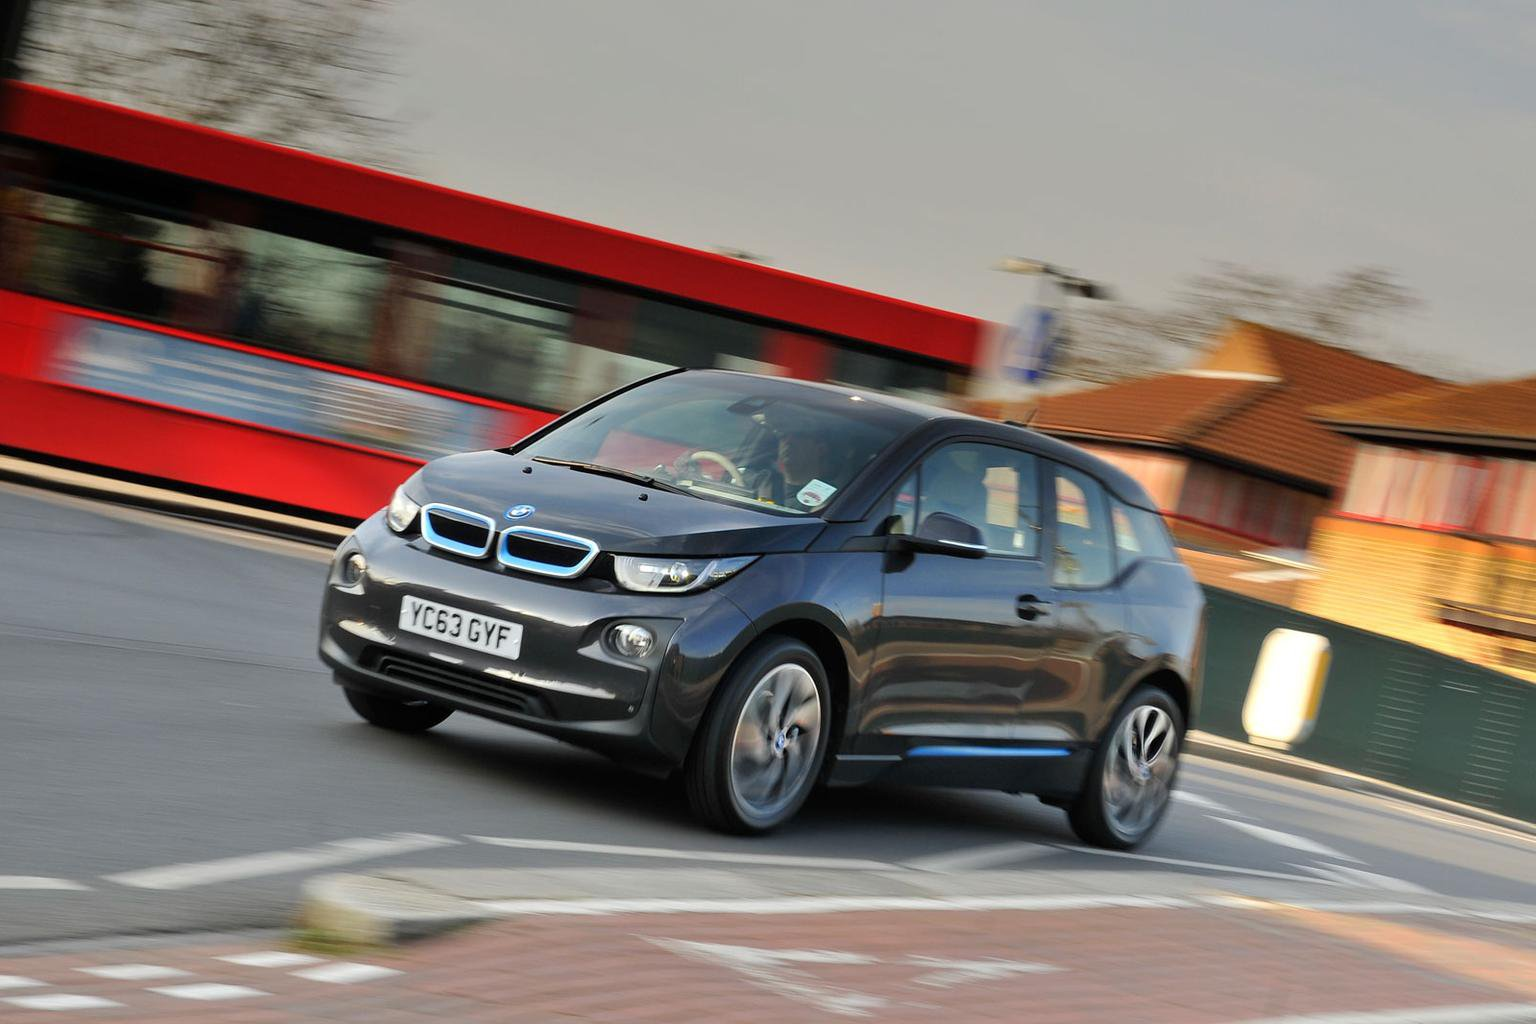 Our cars: BMW i3, Fiat 500L and Volvo V60